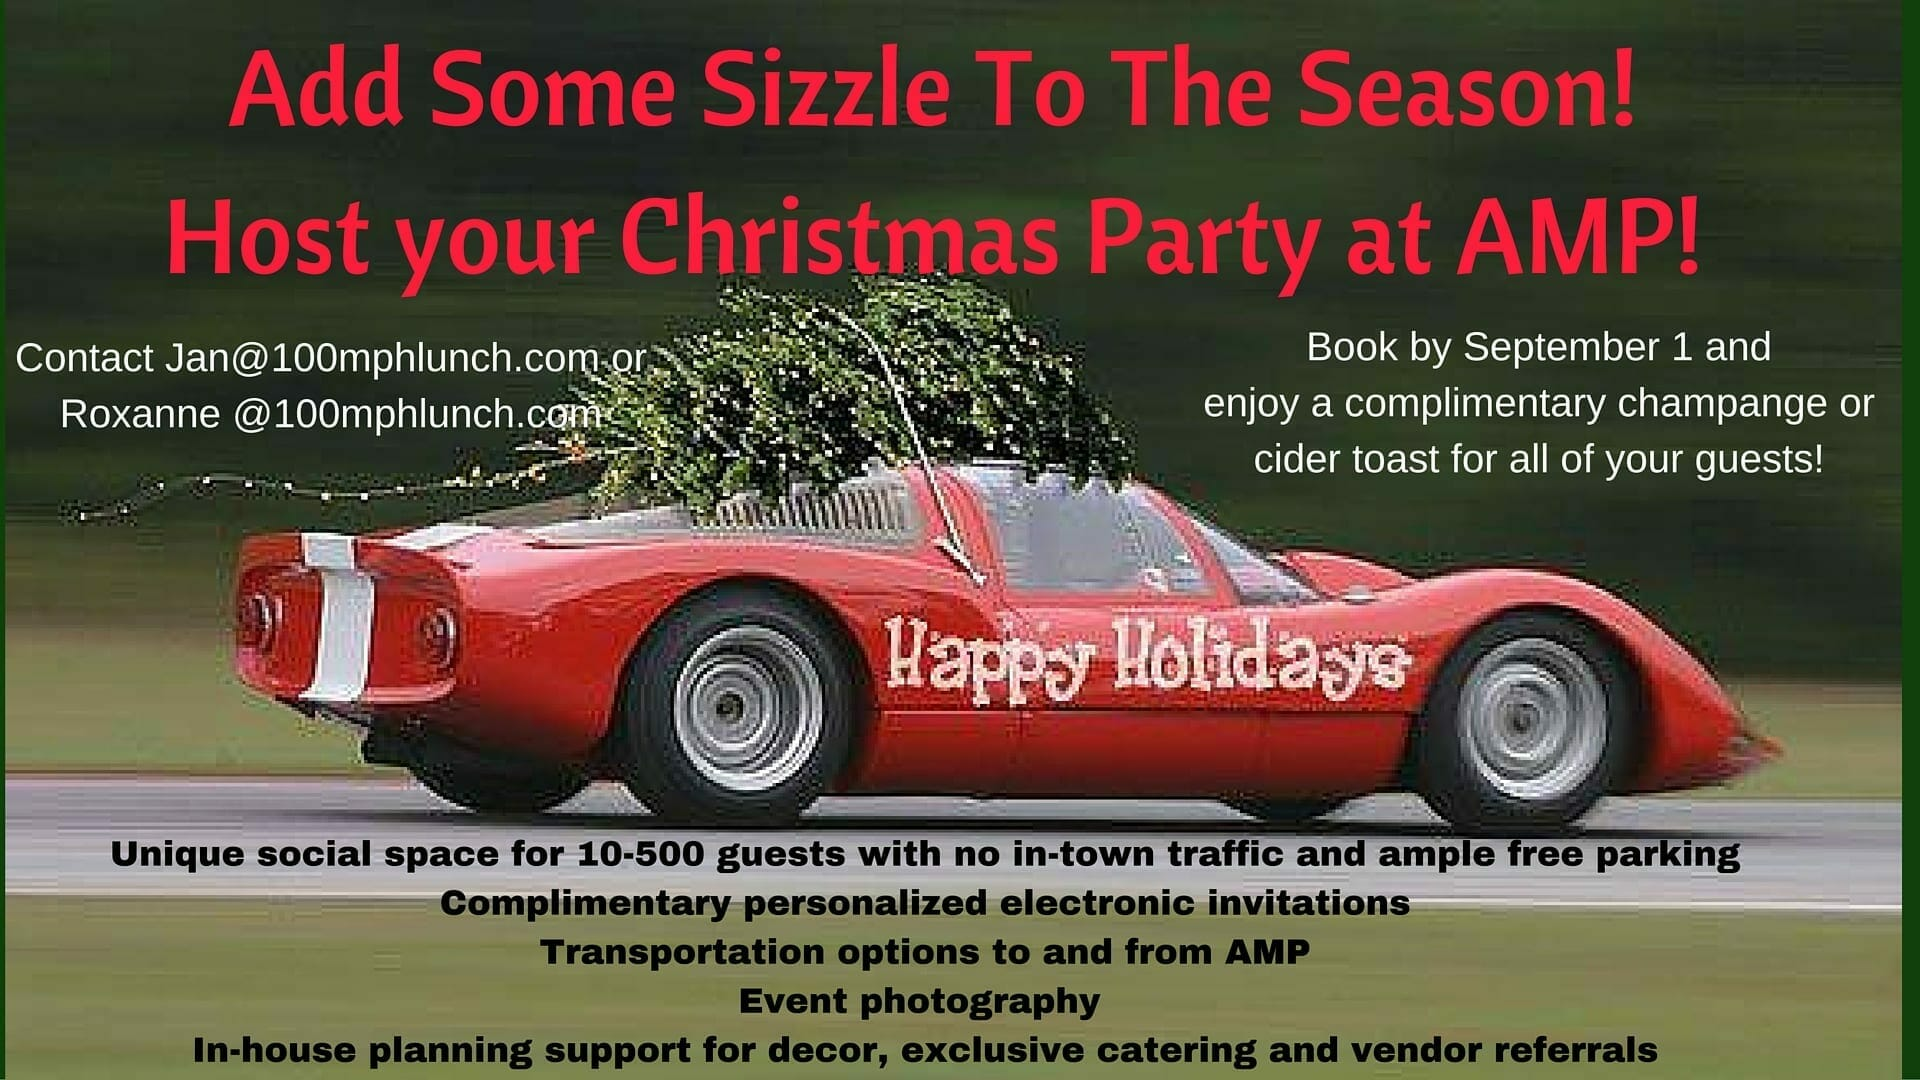 Unique Event SpaceAdd Some Sizzle To The Season!Host your Christmas Party at AMP! (1)